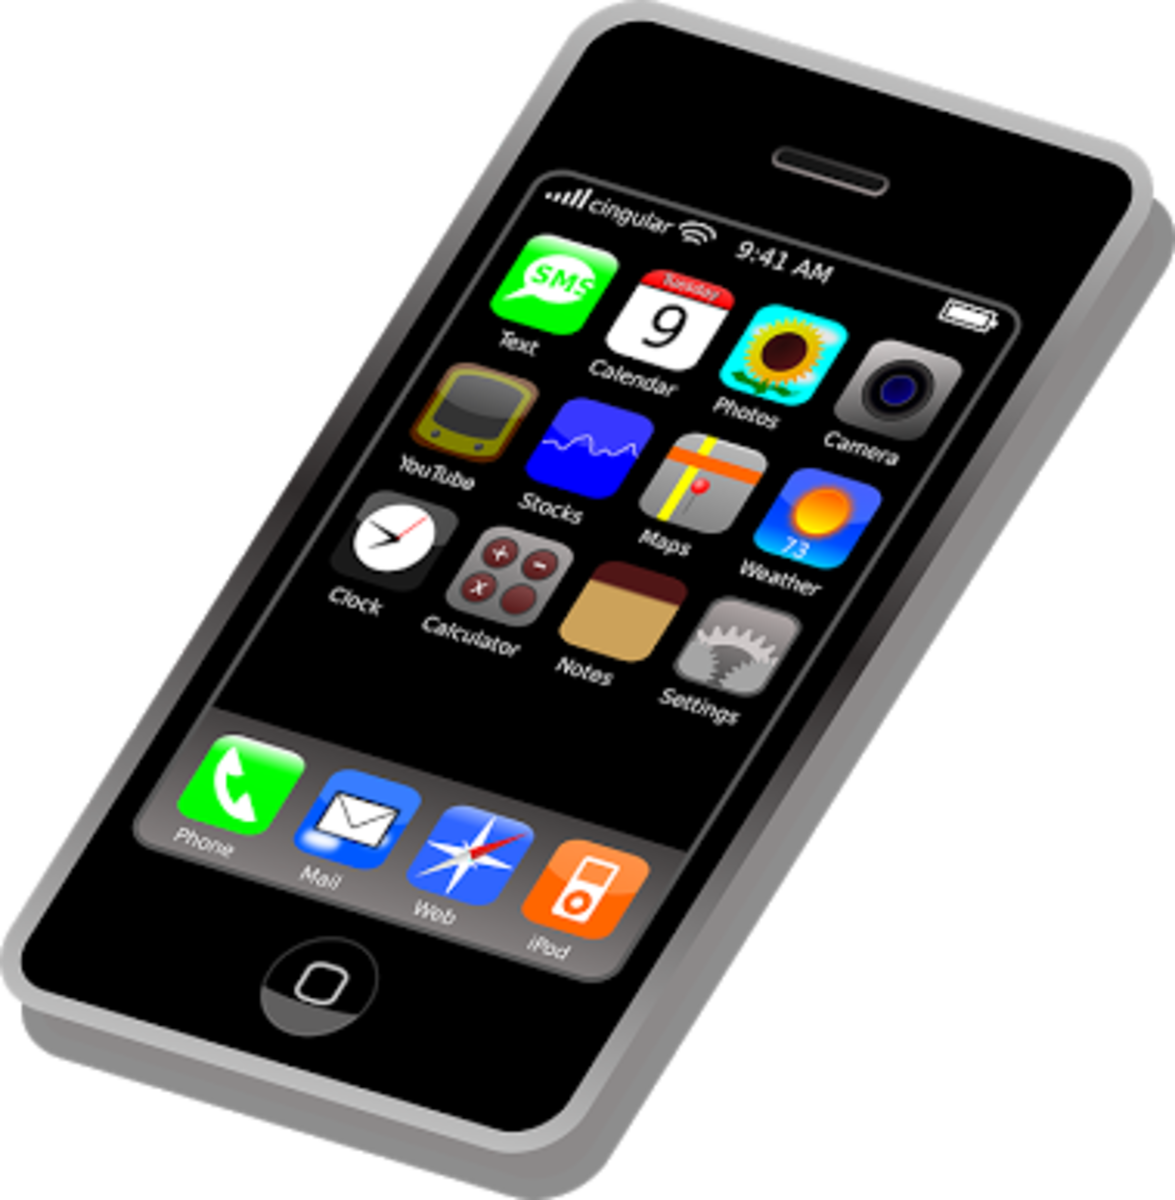 Popular apps on mobile phone